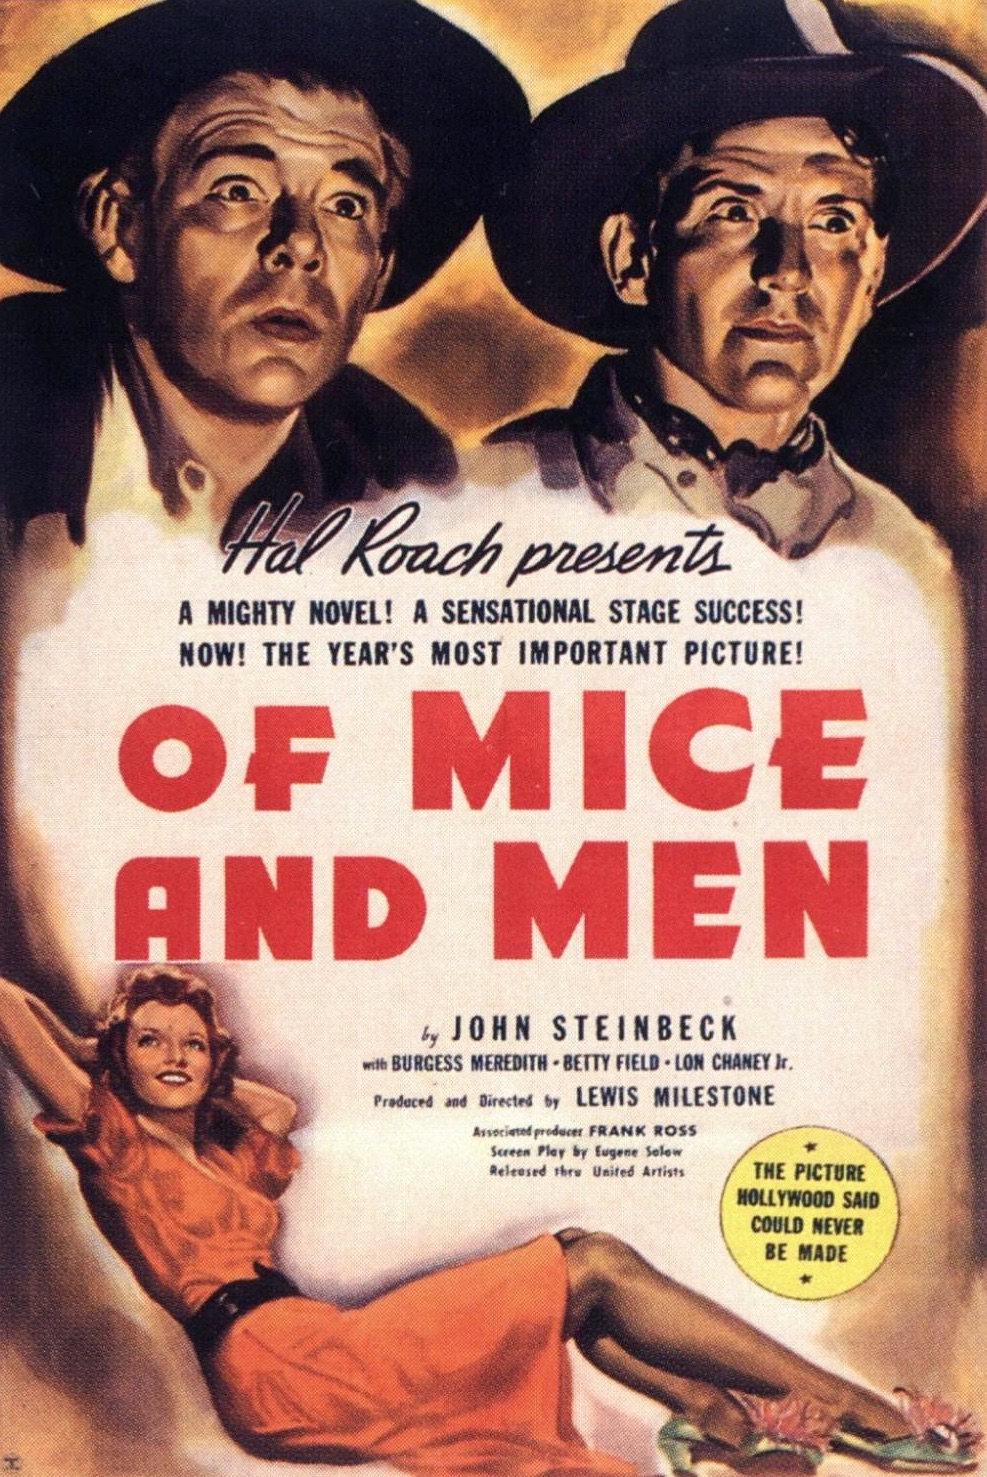 of-mice-and-men-poster.jpg